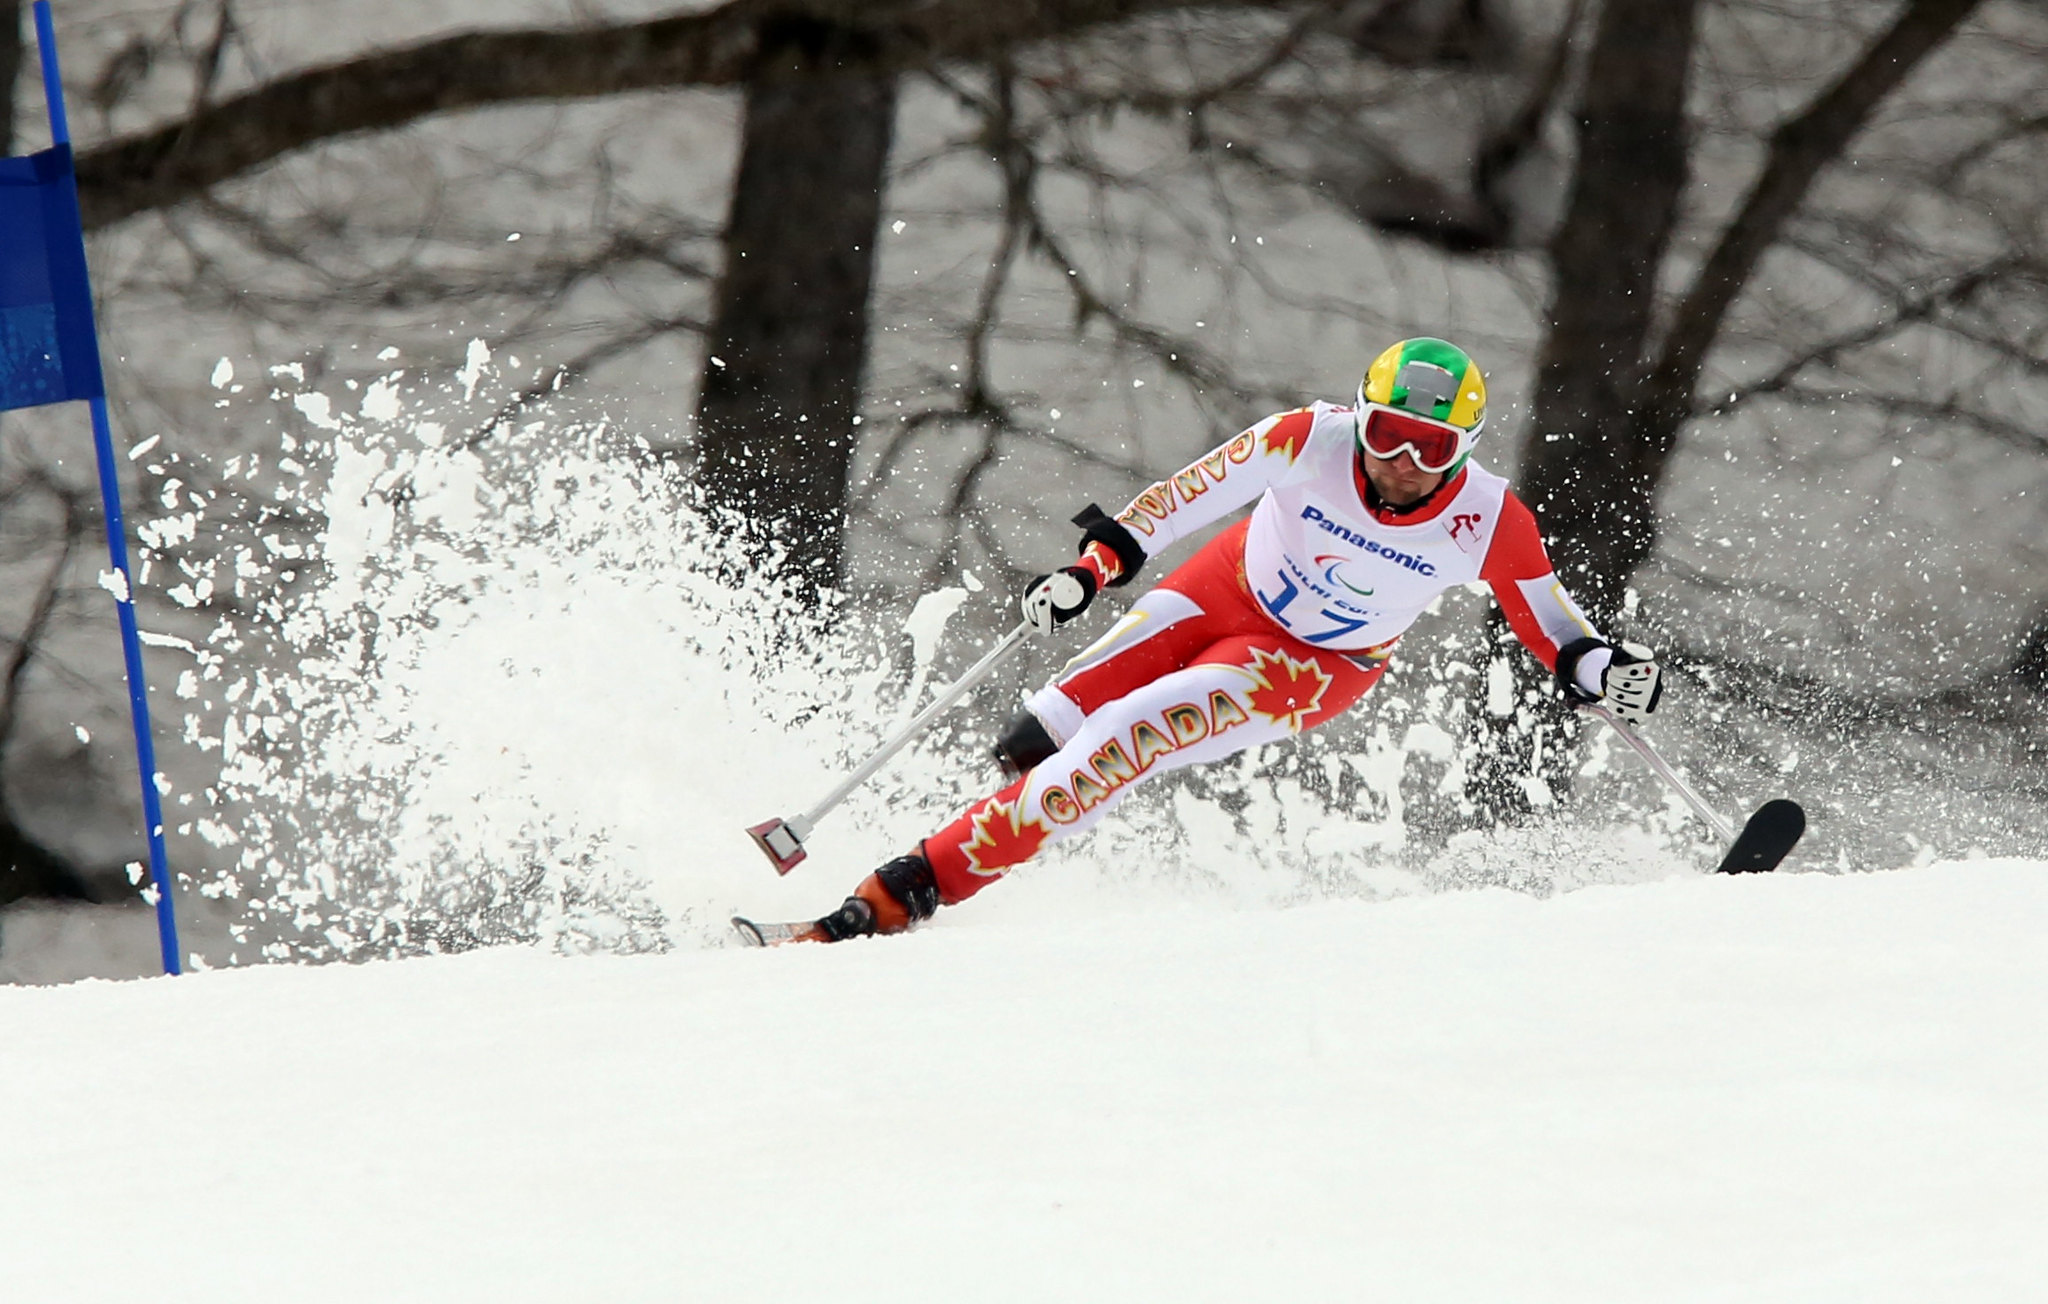 Matt Hallat kicks up some spray in Sochi, RUS during the Super-G at the 2014 Paralympic Winter Games